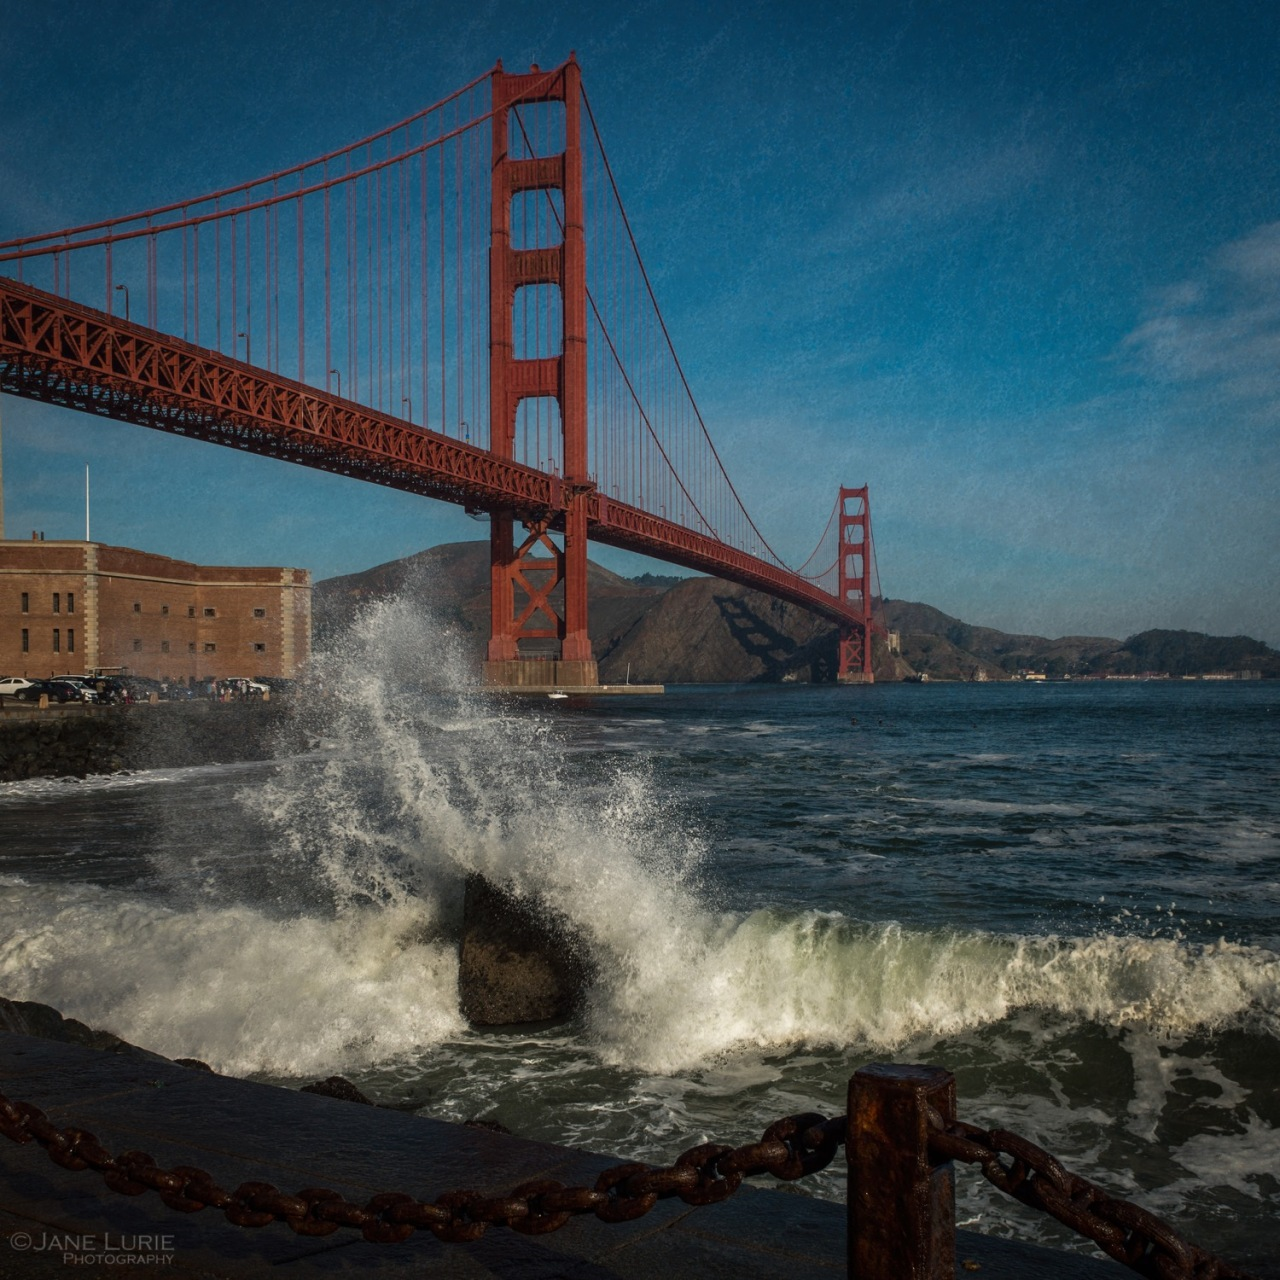 Landscape, Photography, San Francisco, California, City, Wave